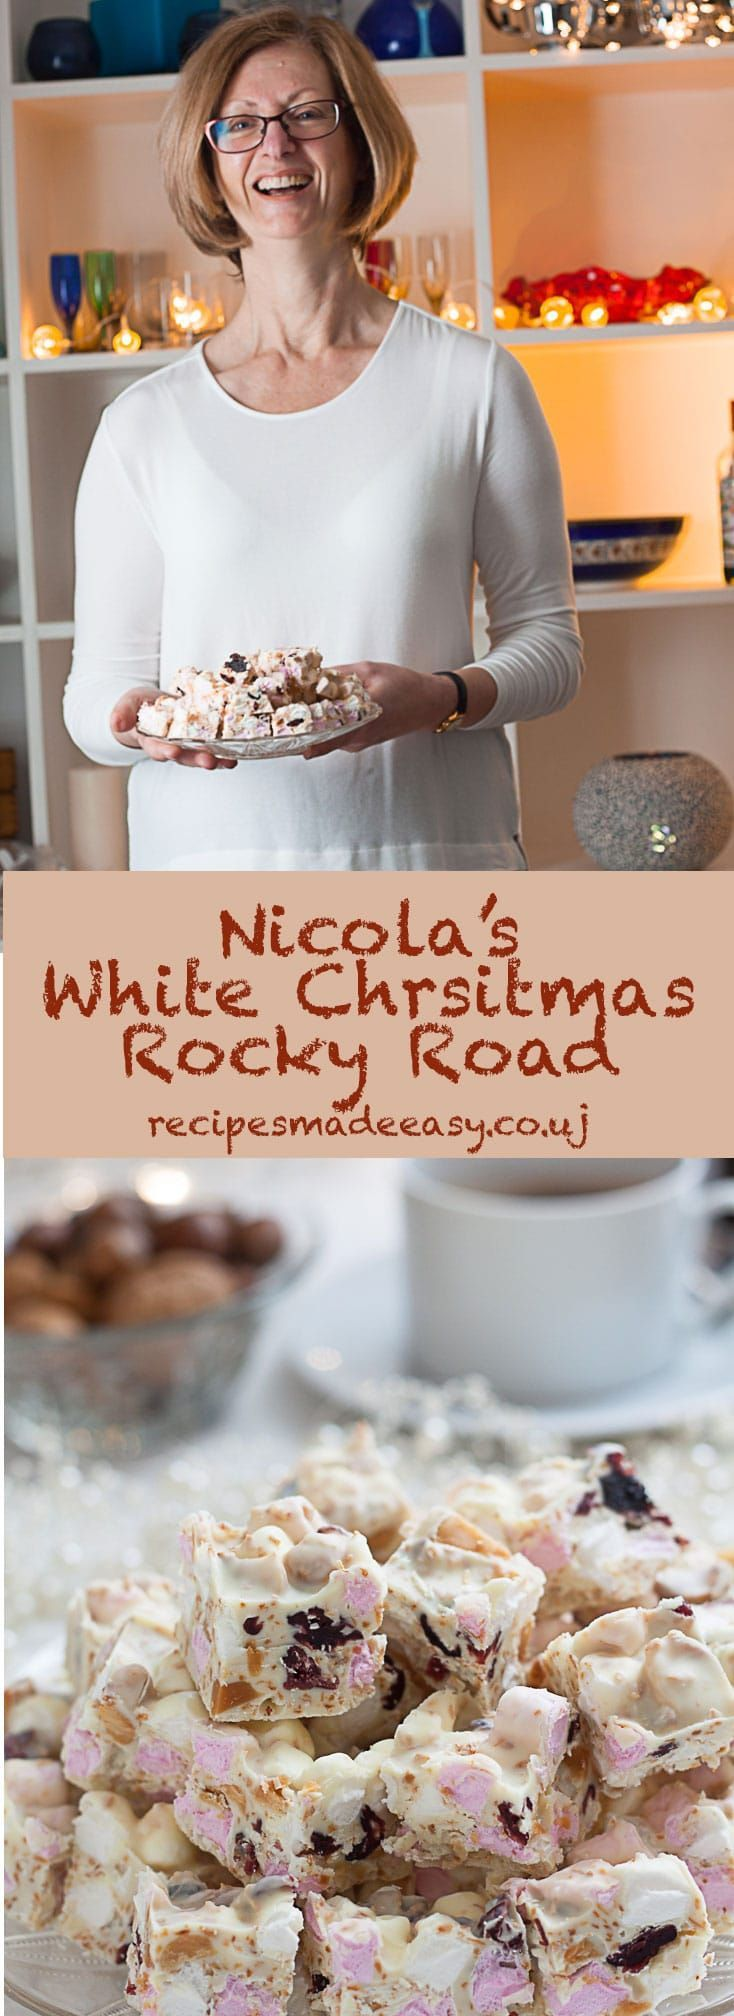 Nicola's White Christmas Rocky Road on Recipes Made Easy -A delicious mixture of toasted coconut, macadamia nuts, cranberries and marshmallow in creamy white chocolate via @jacdotbee